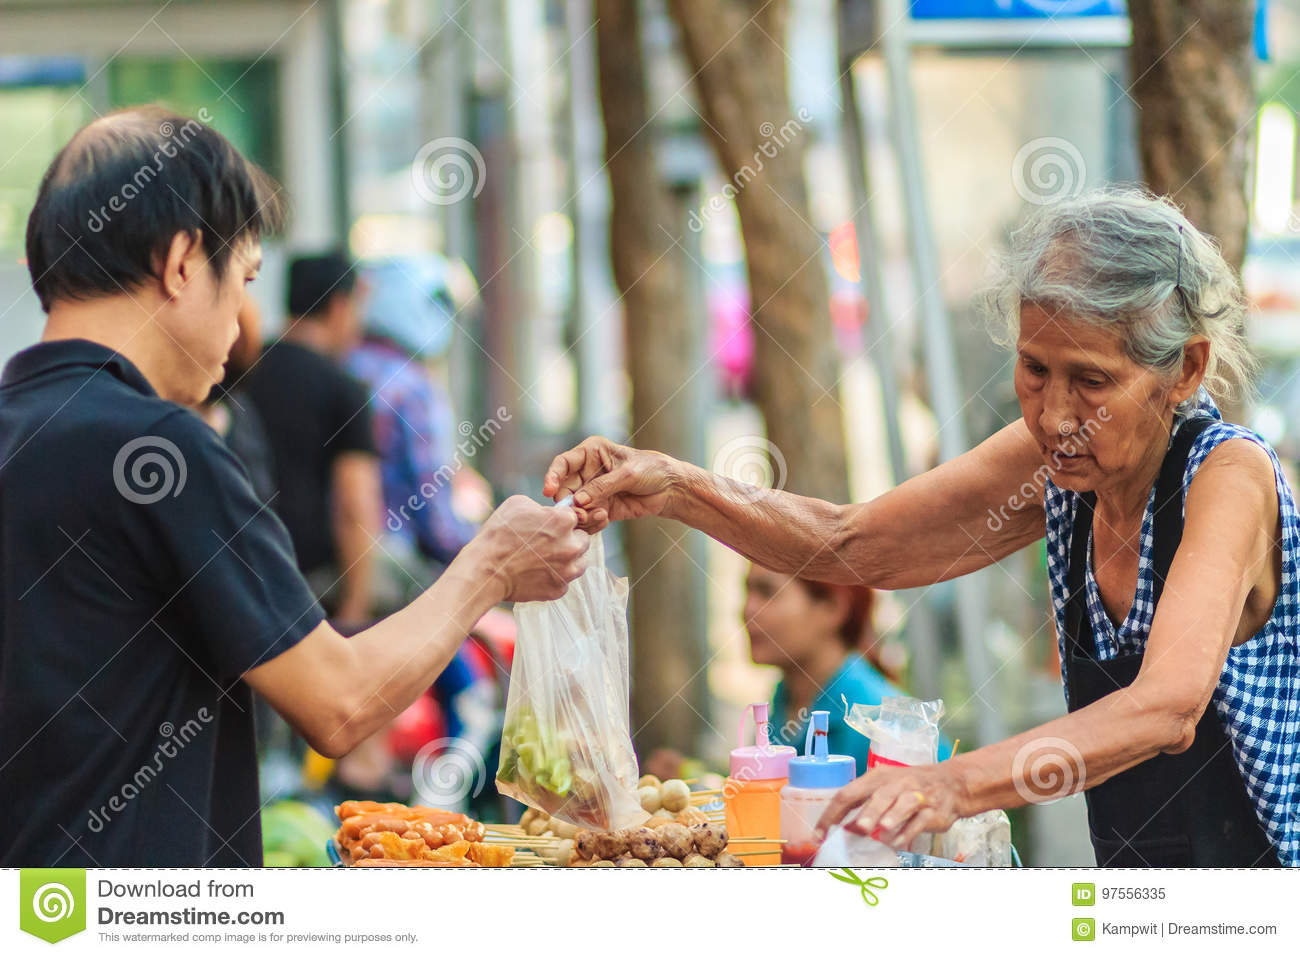 Bangkok, Thailand - April 23, 2017: Unidentified old woman street vendor is selling fried meat balls to her customer.